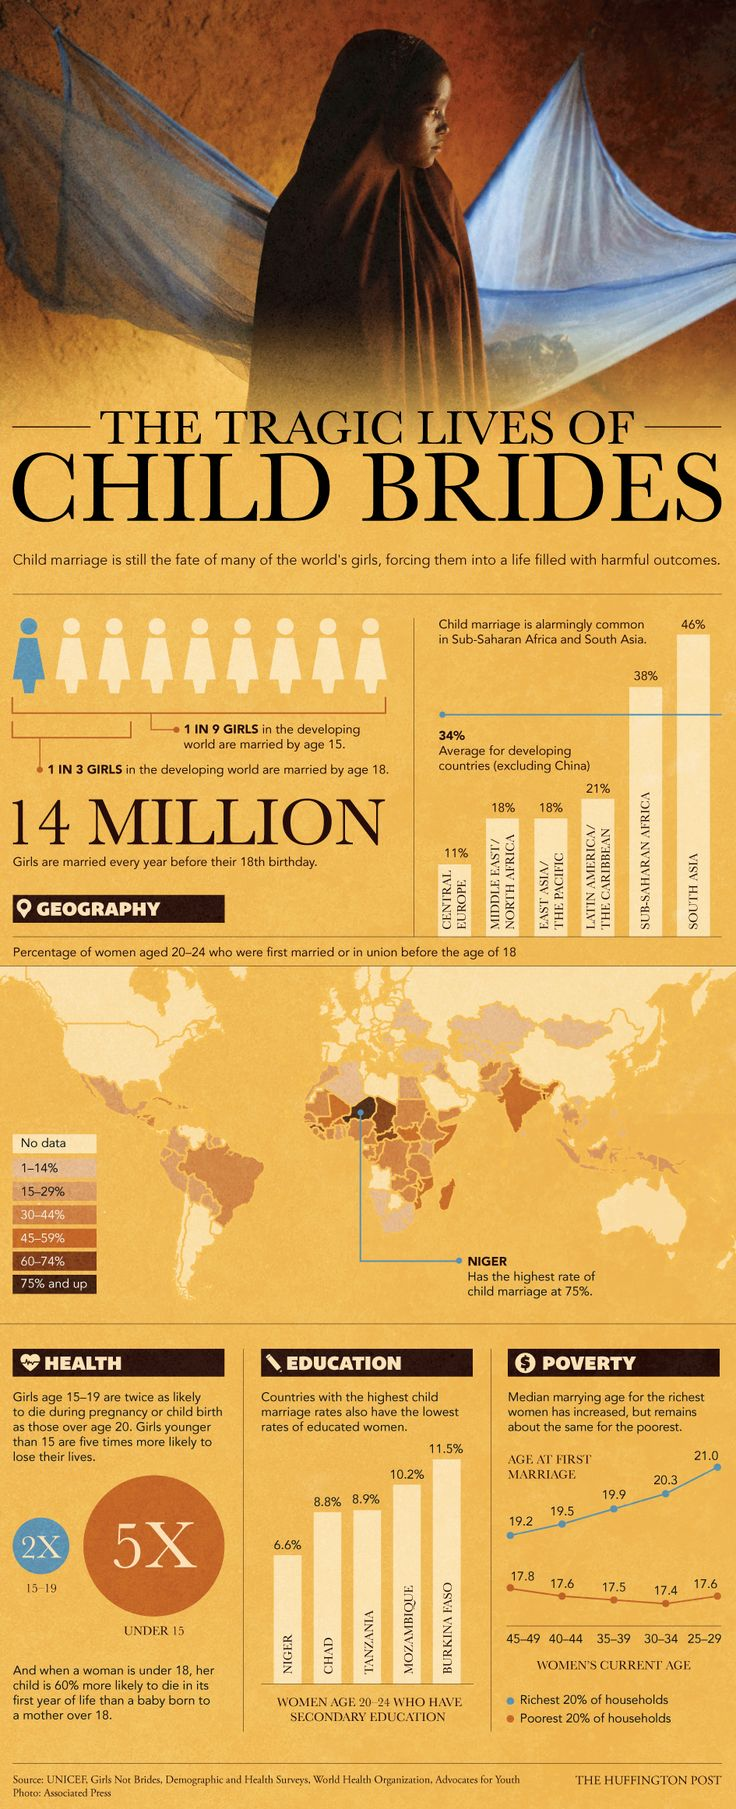 The Tragic Lives Of Child Brides #ChildMariage #girls | #infographics repinned by @Piktochart